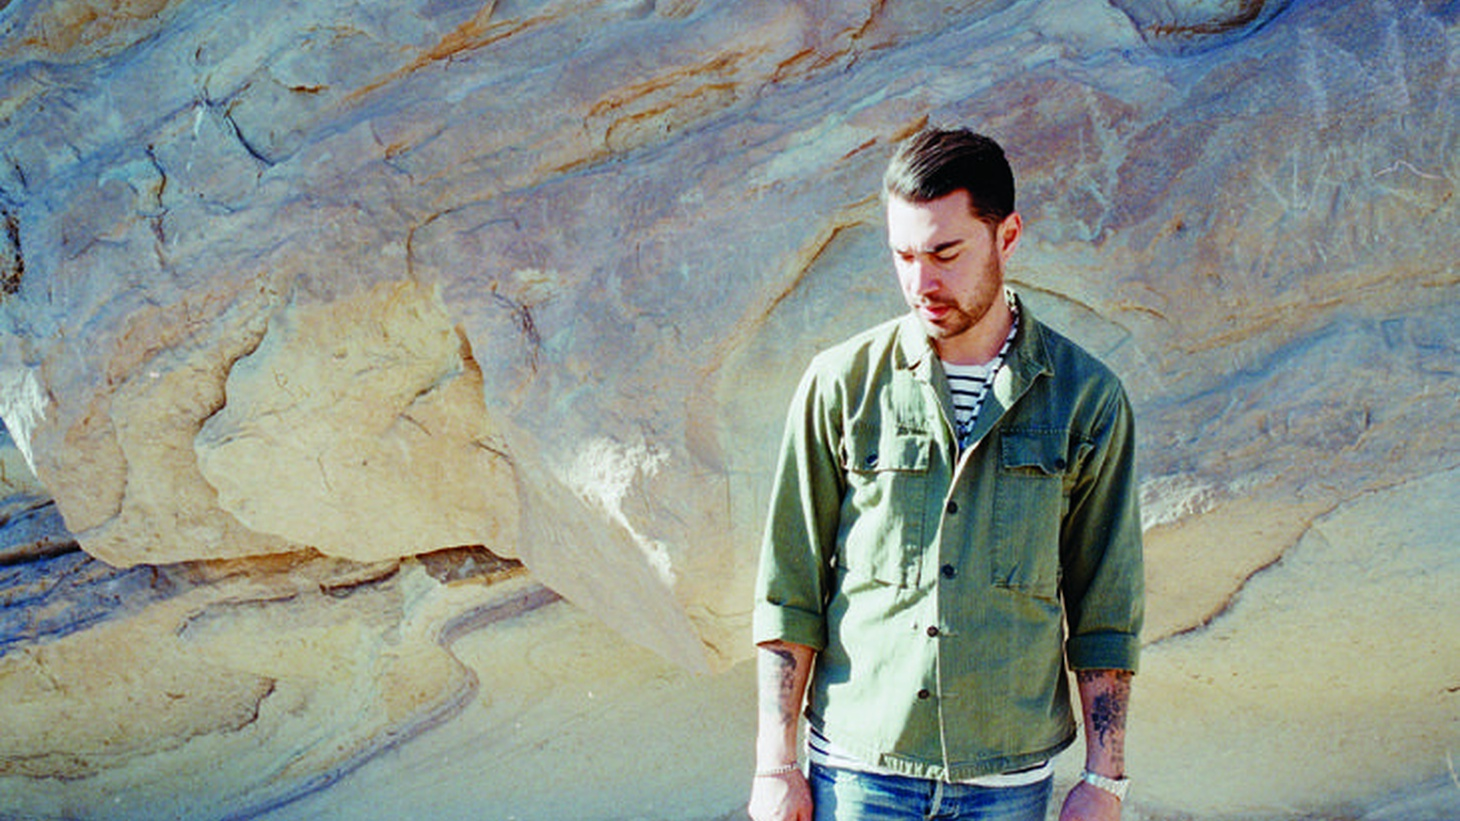 We welcome the raw blues energy and dramatic flair of Hanni El Khatib when the LA-based musician returns...